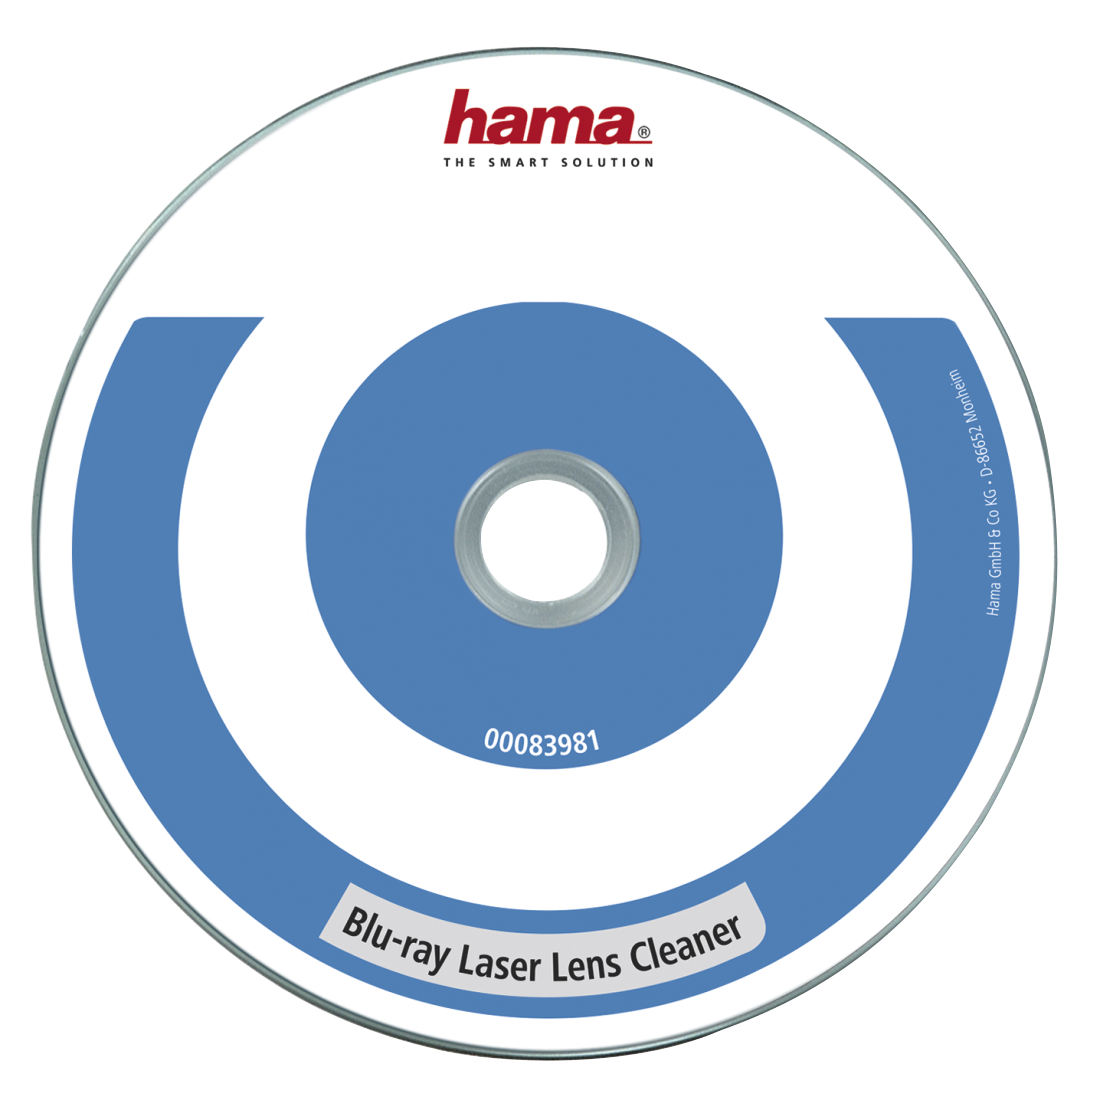 abx High-Res Image - Hama, Blu-ray Laser Lens Cleaner